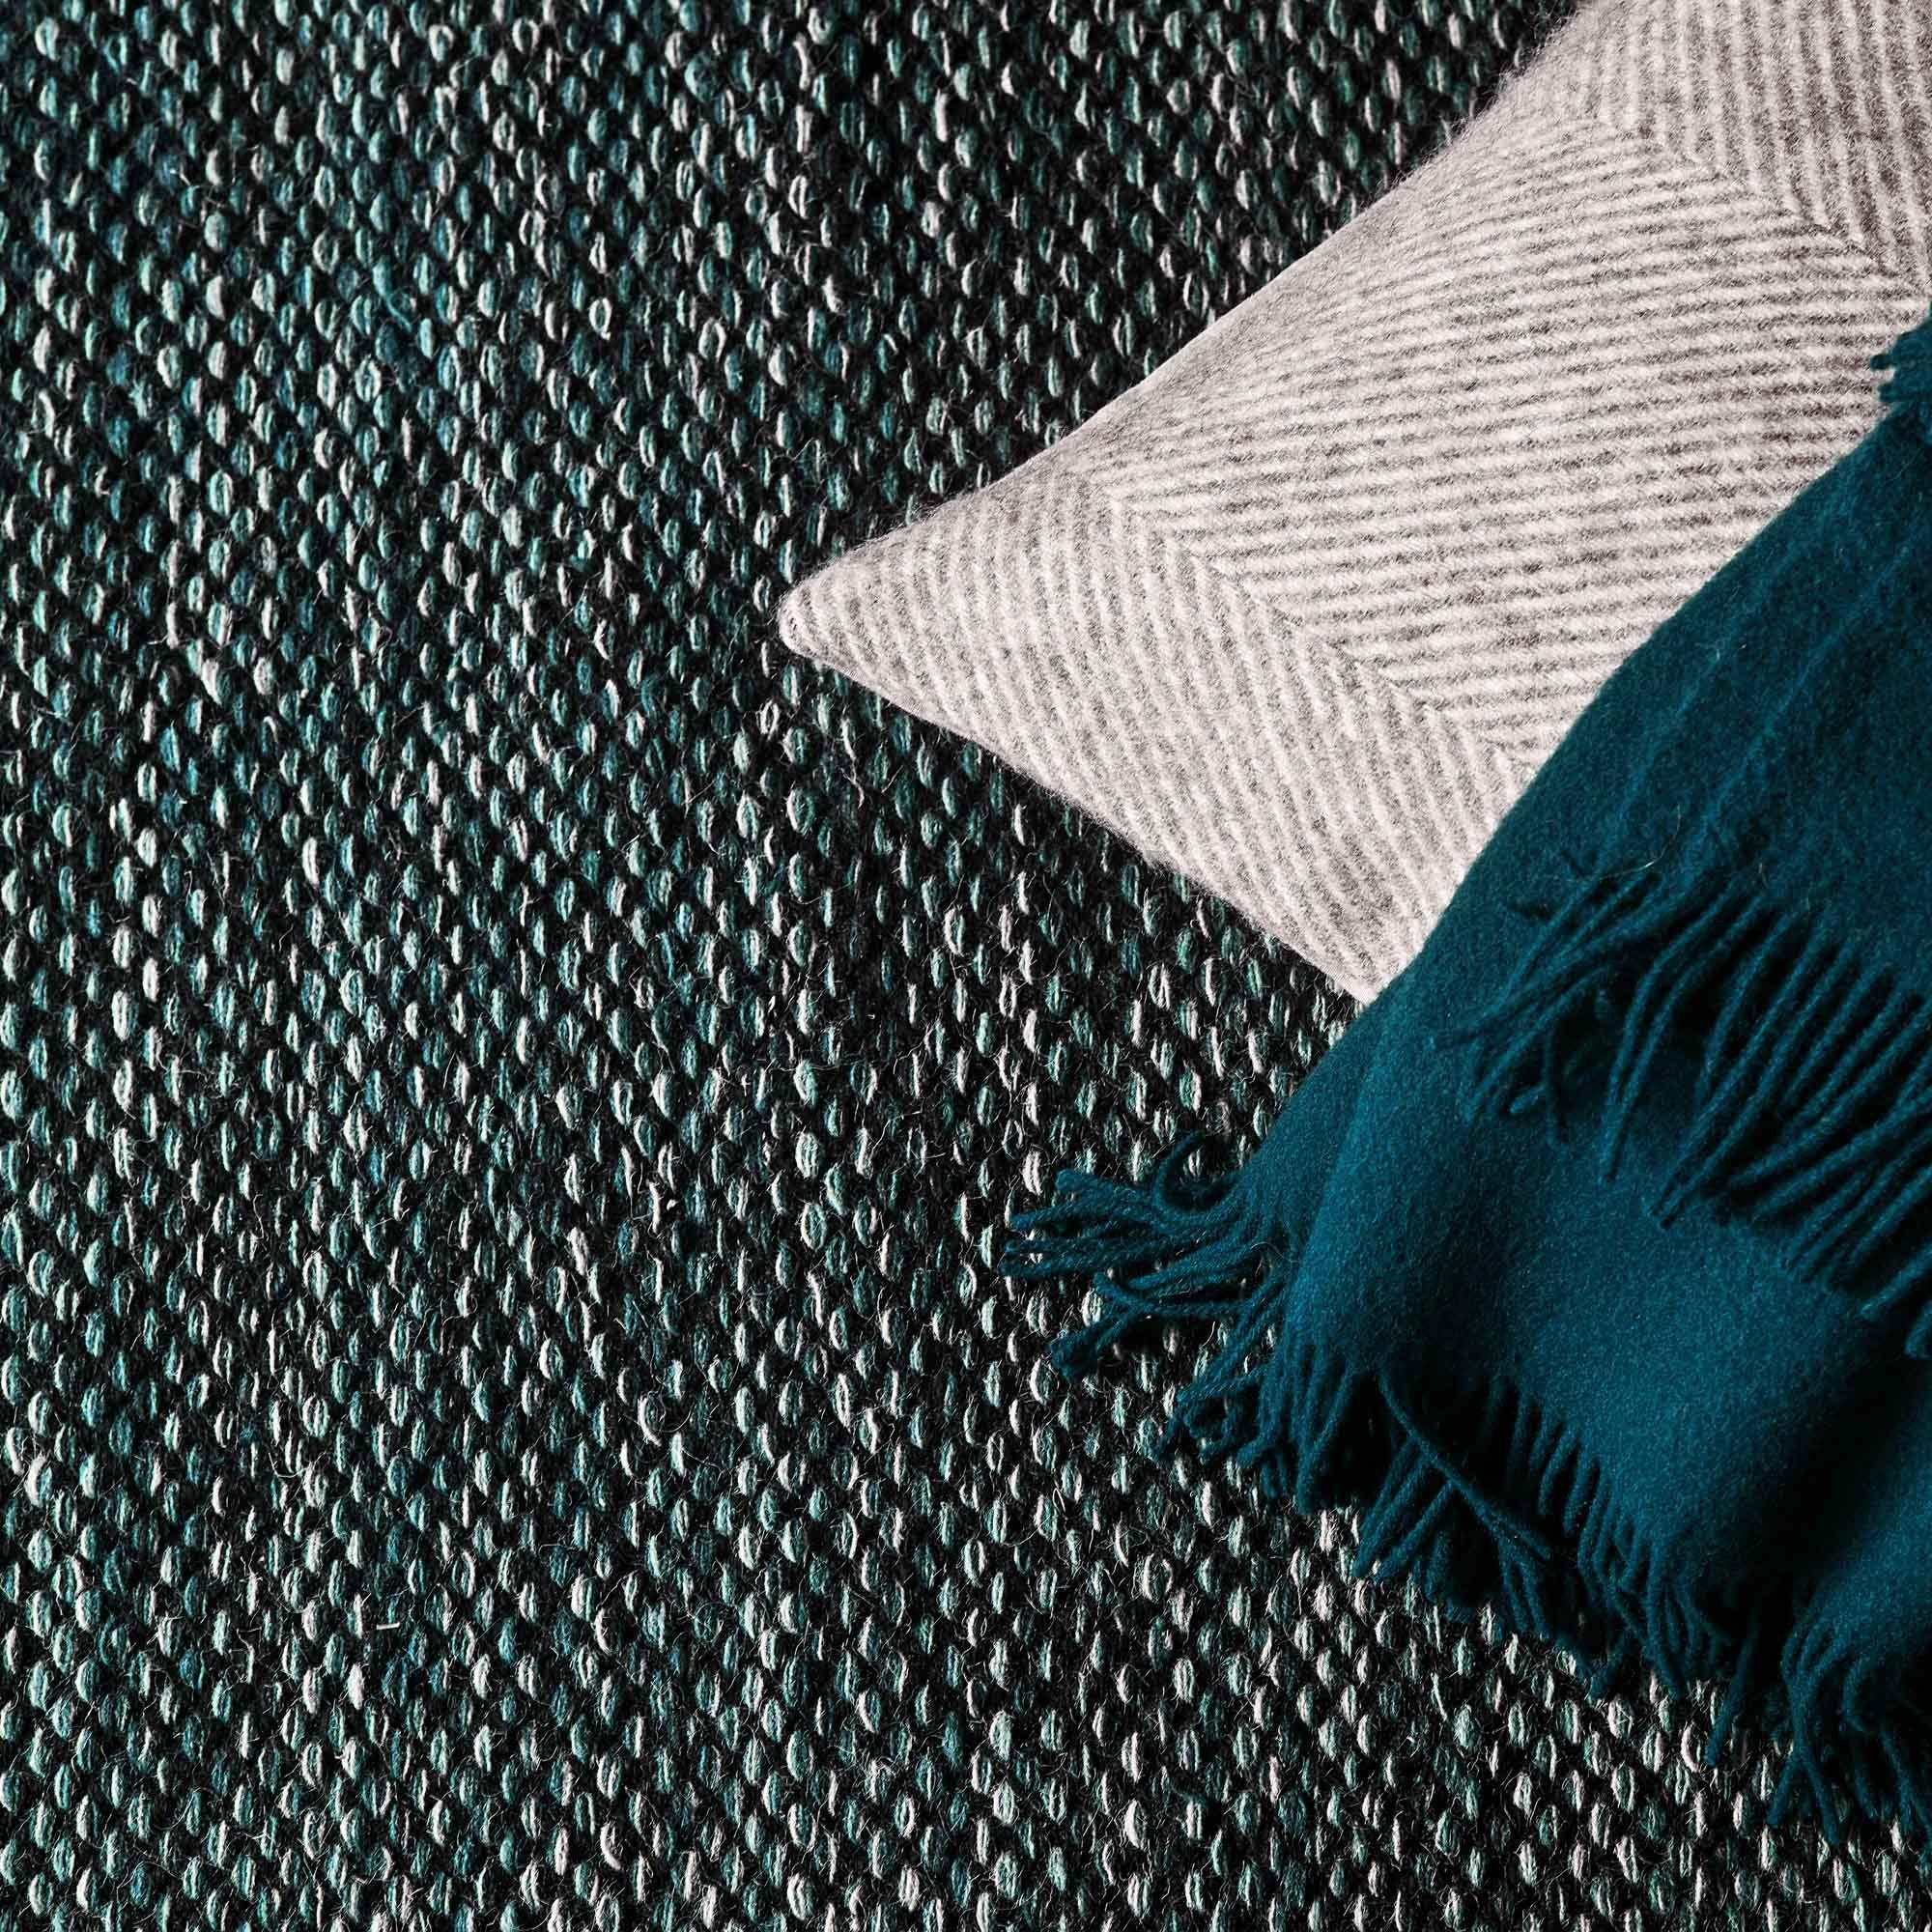 Grey green & Black Odis Läufer | Home & Living inspiration | URBANARA